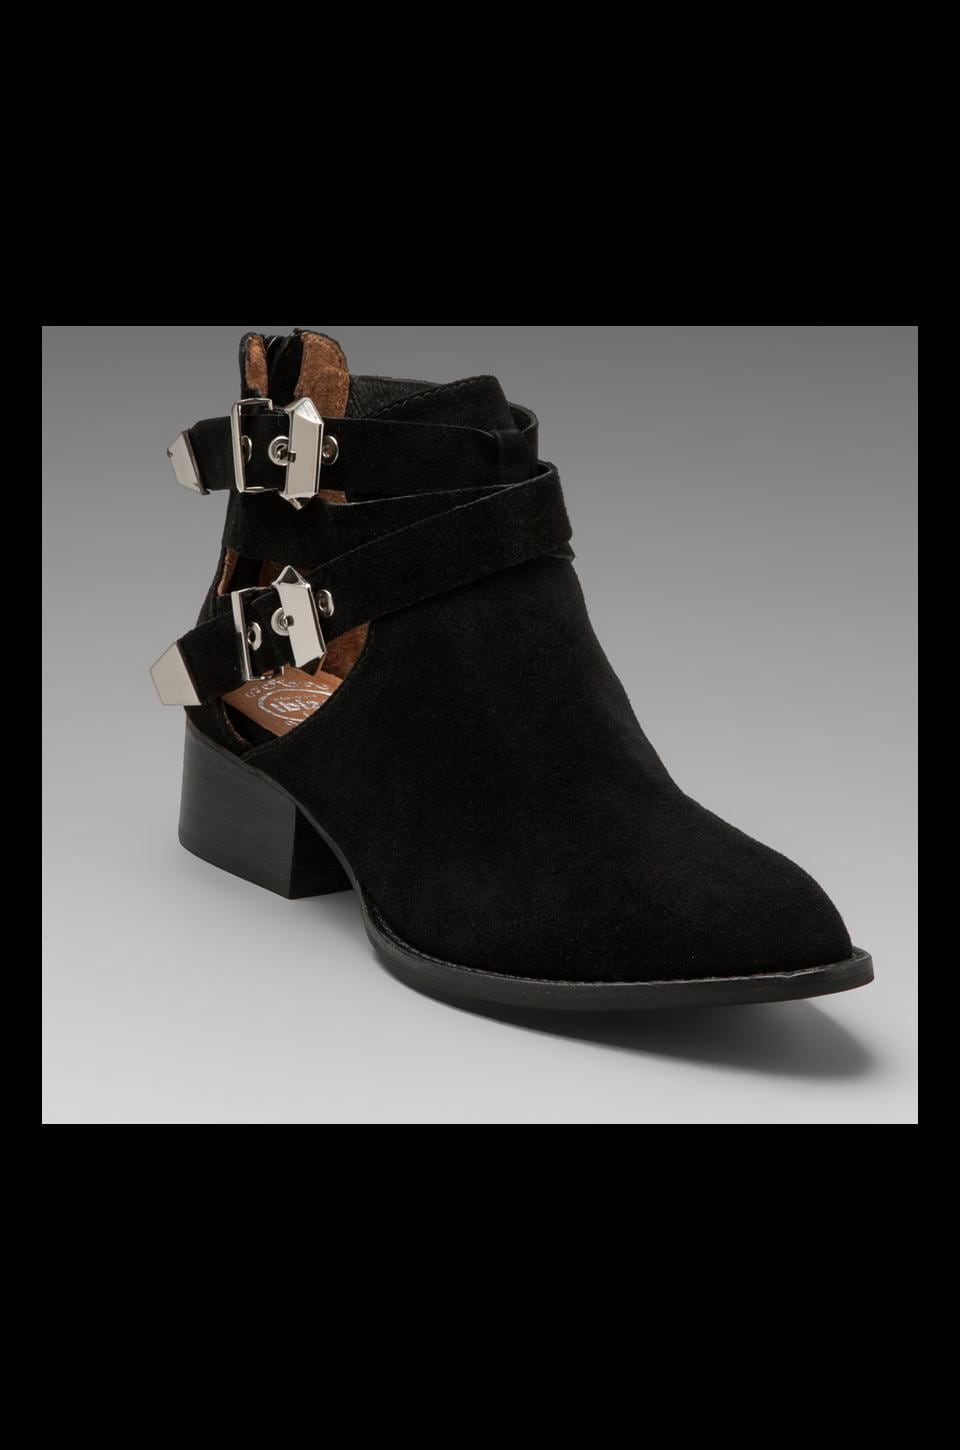 Jeffrey Campbell Everly in Black Suede